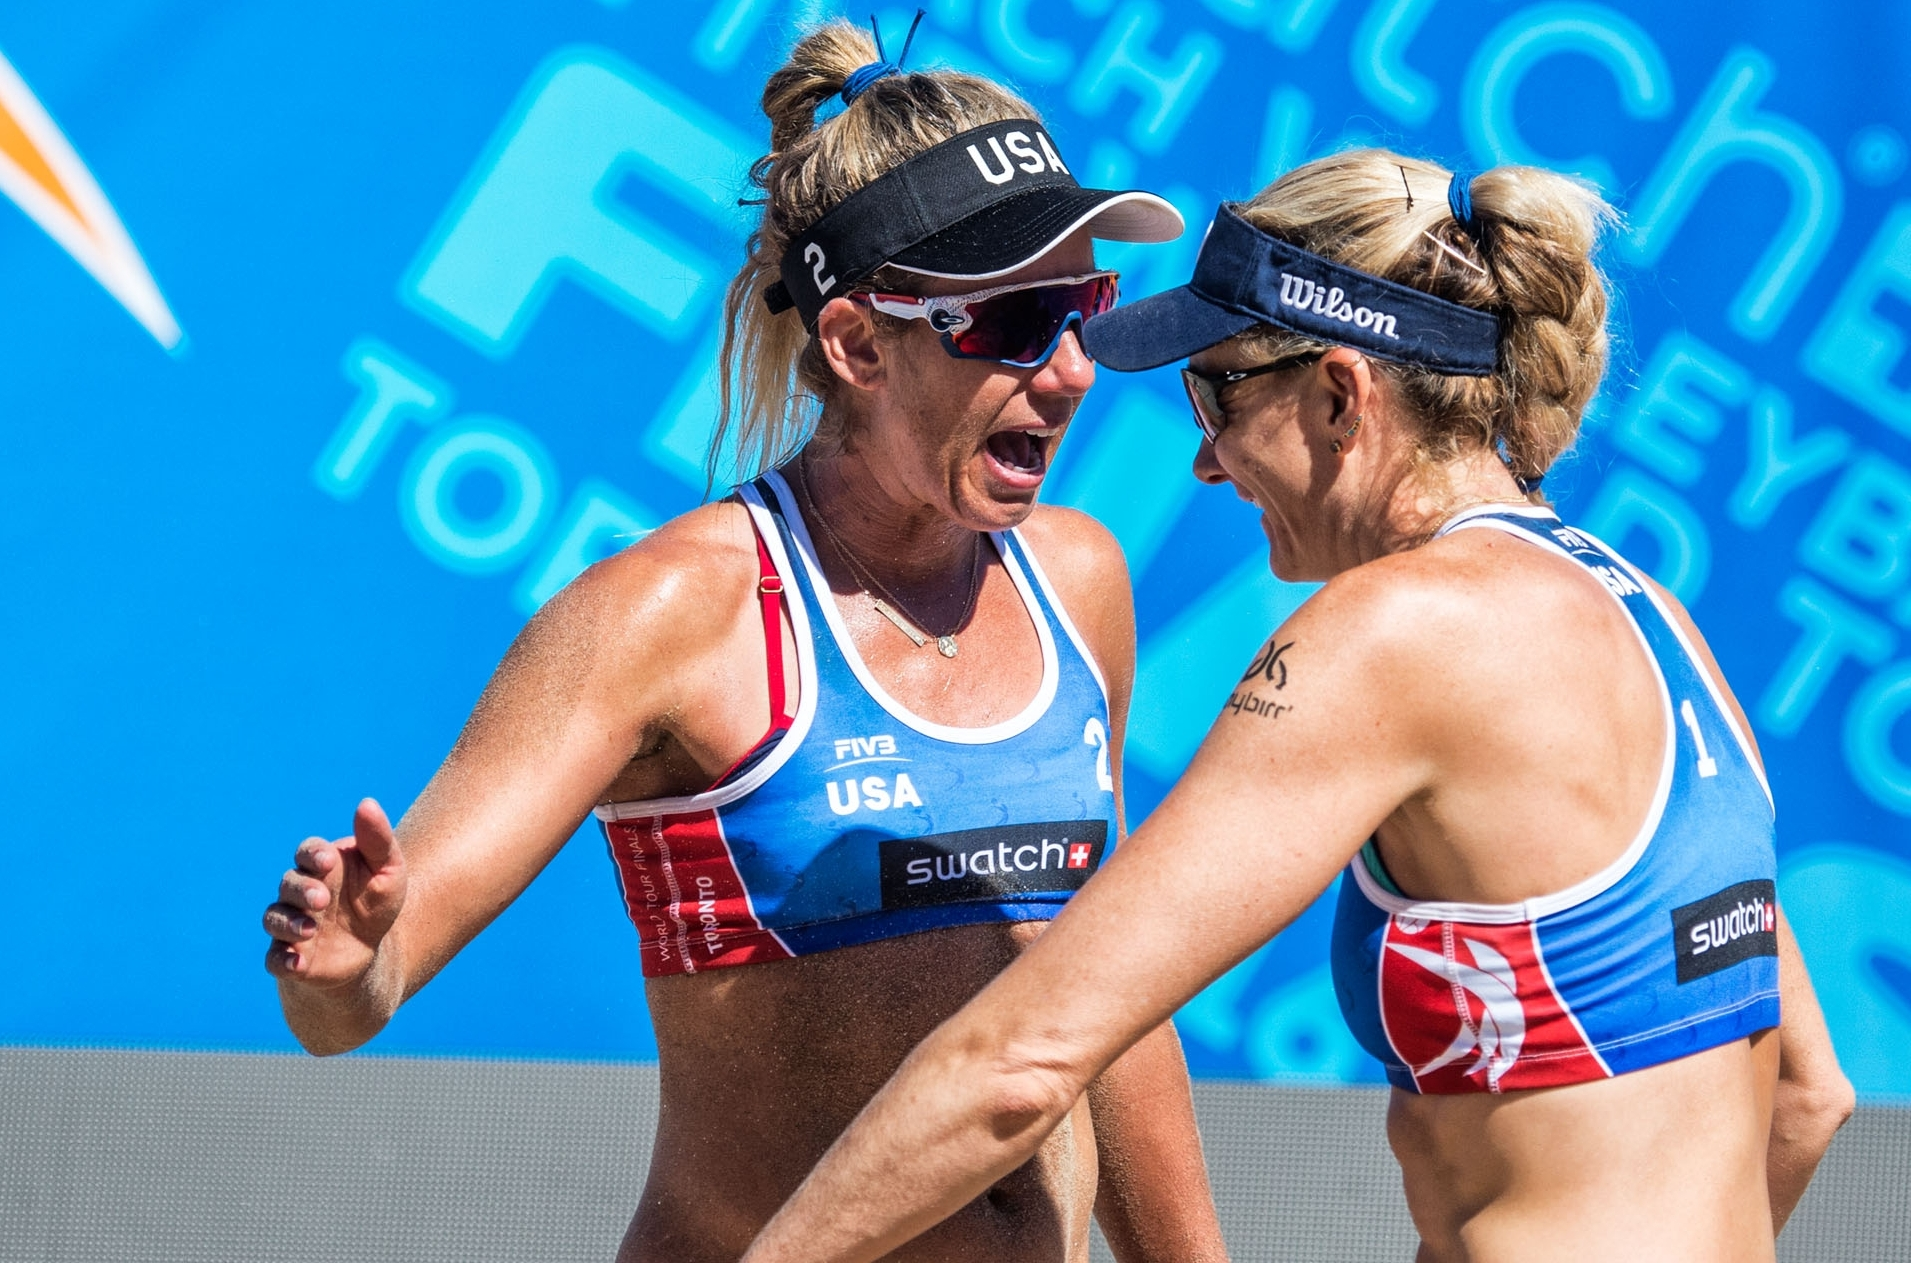 Kerri and April have wasted no time in booking their place in the quarterfinals! Photocredit: Mihai Stetcu